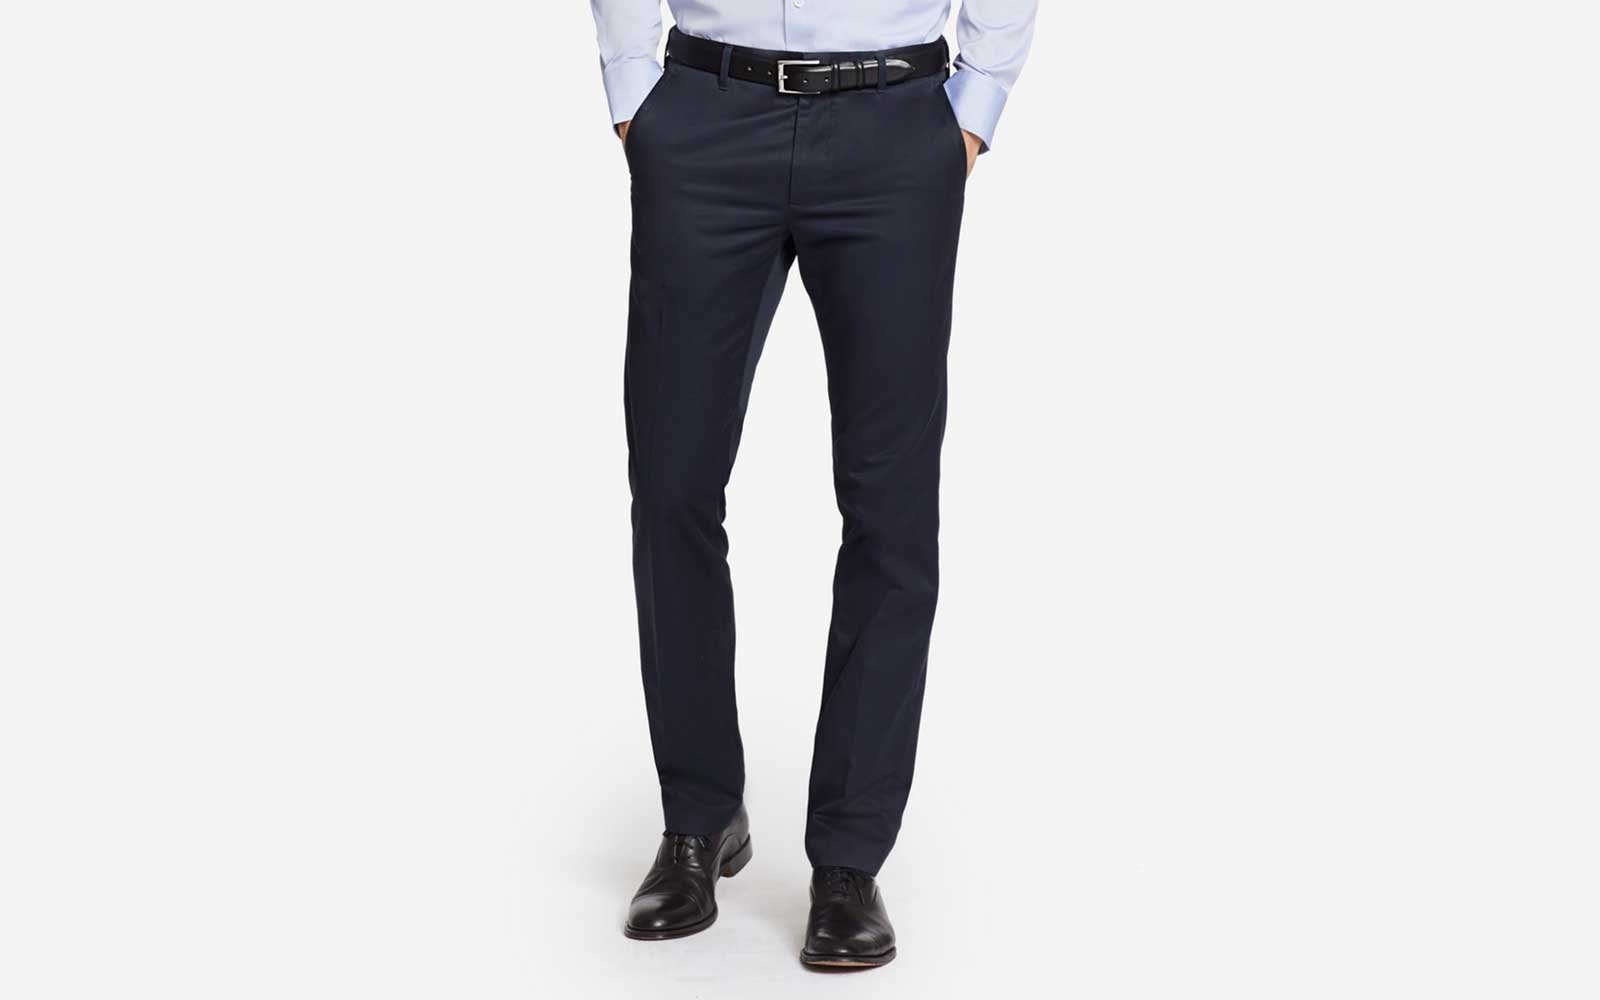 bb2588f4c872 Best Chino Pant  Bonobos  Weekday Warrior  Dress Pant